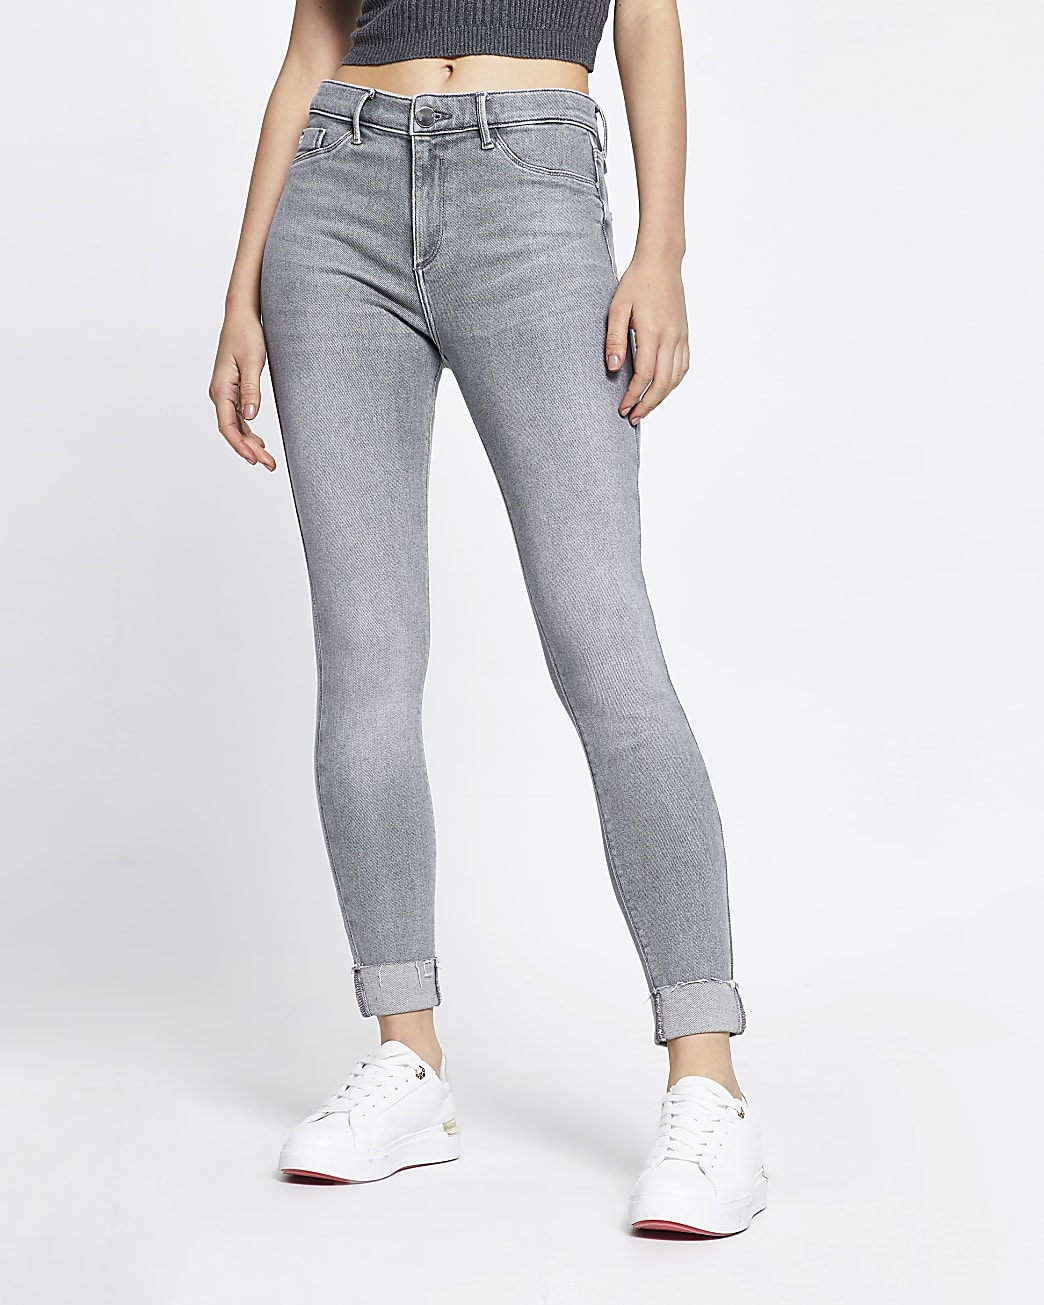 Grey molly mid rise turn up denim jeans